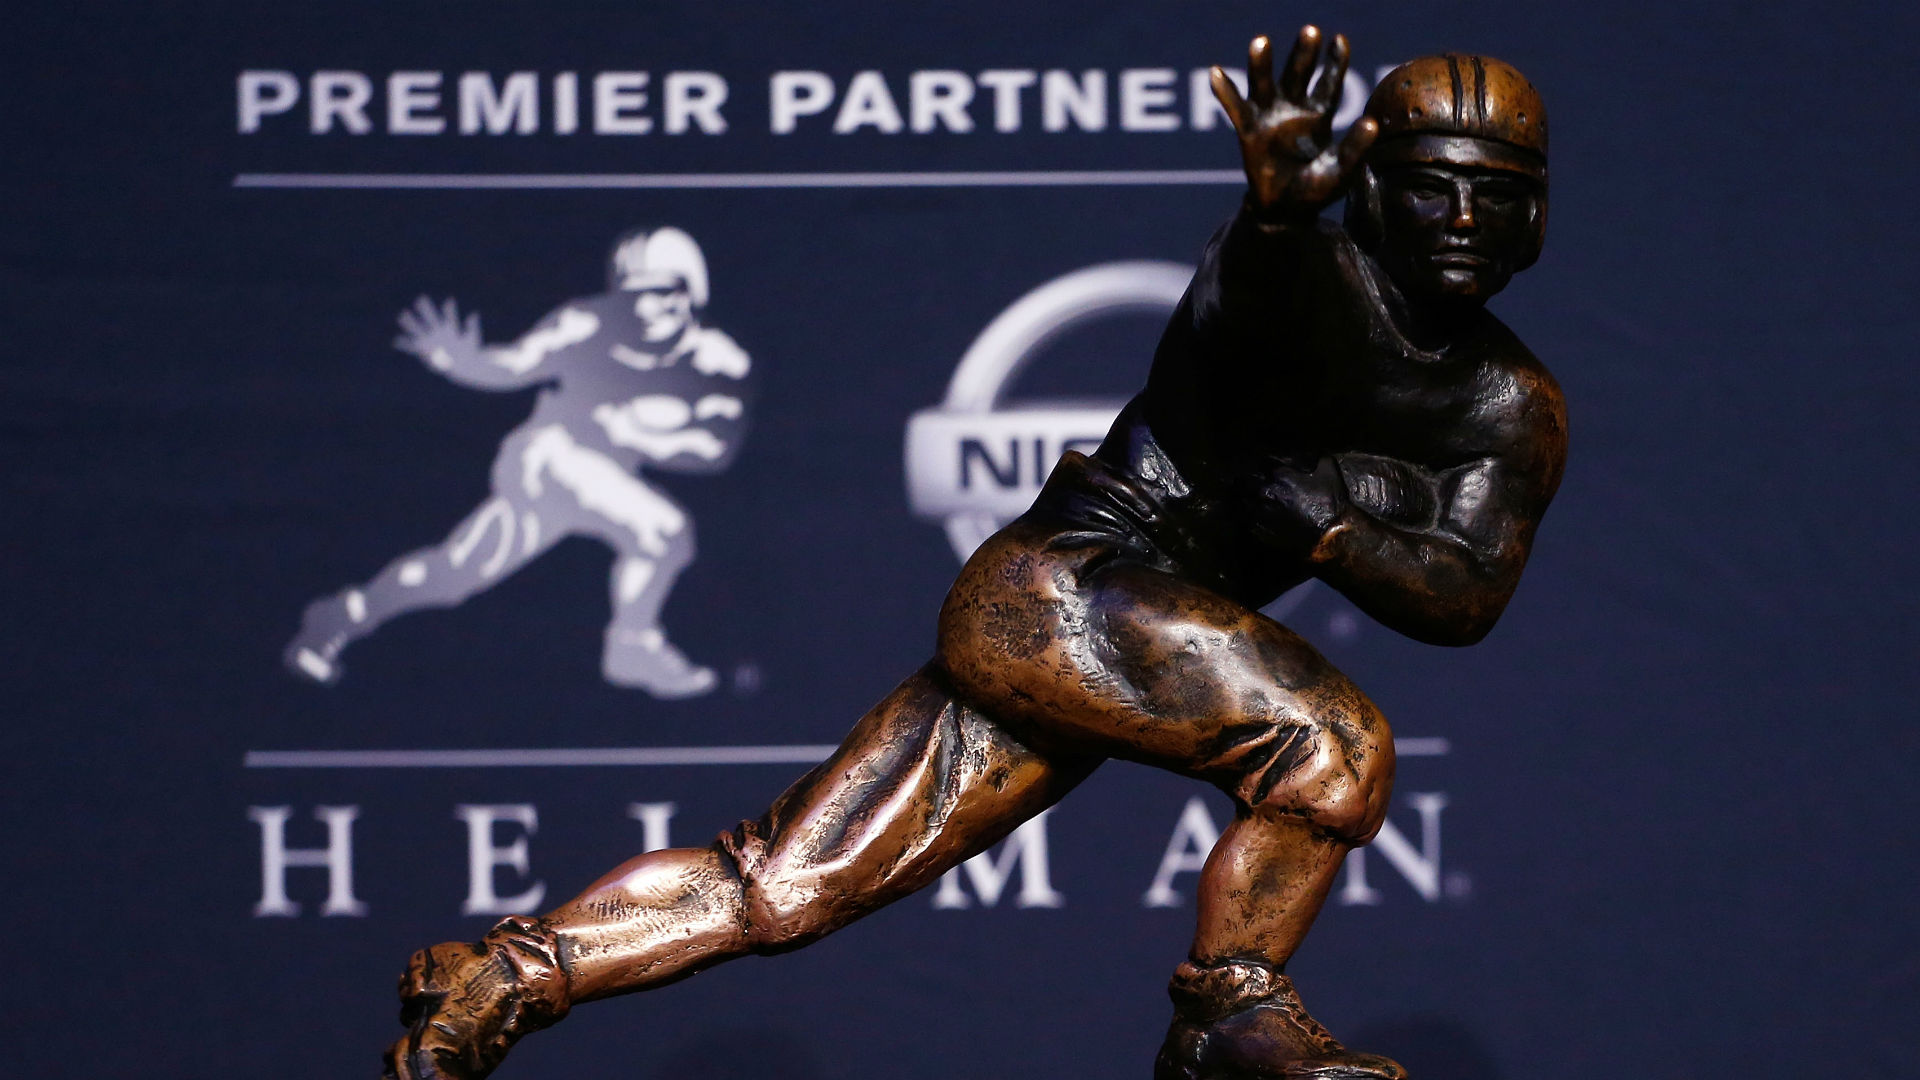 When is the Heisman Trophy ceremony? Start time, odds, finalists for 2019 award presentation